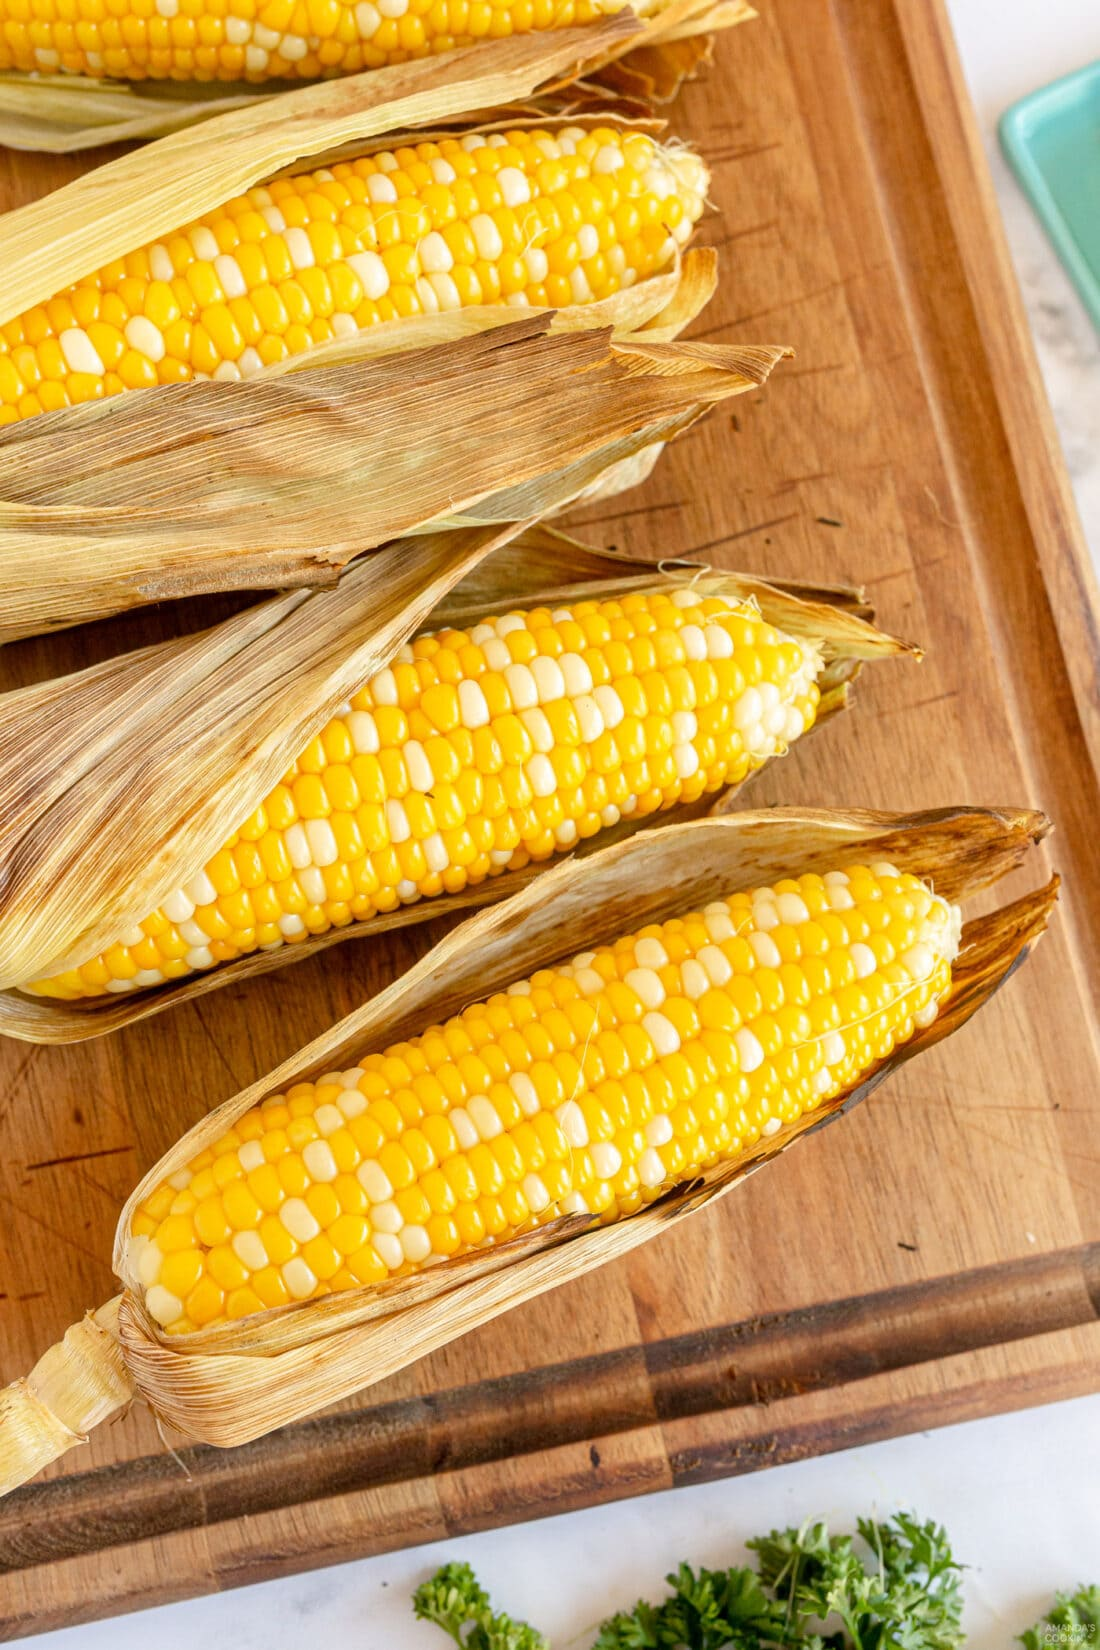 Grilled Corn on the Cob with husks on